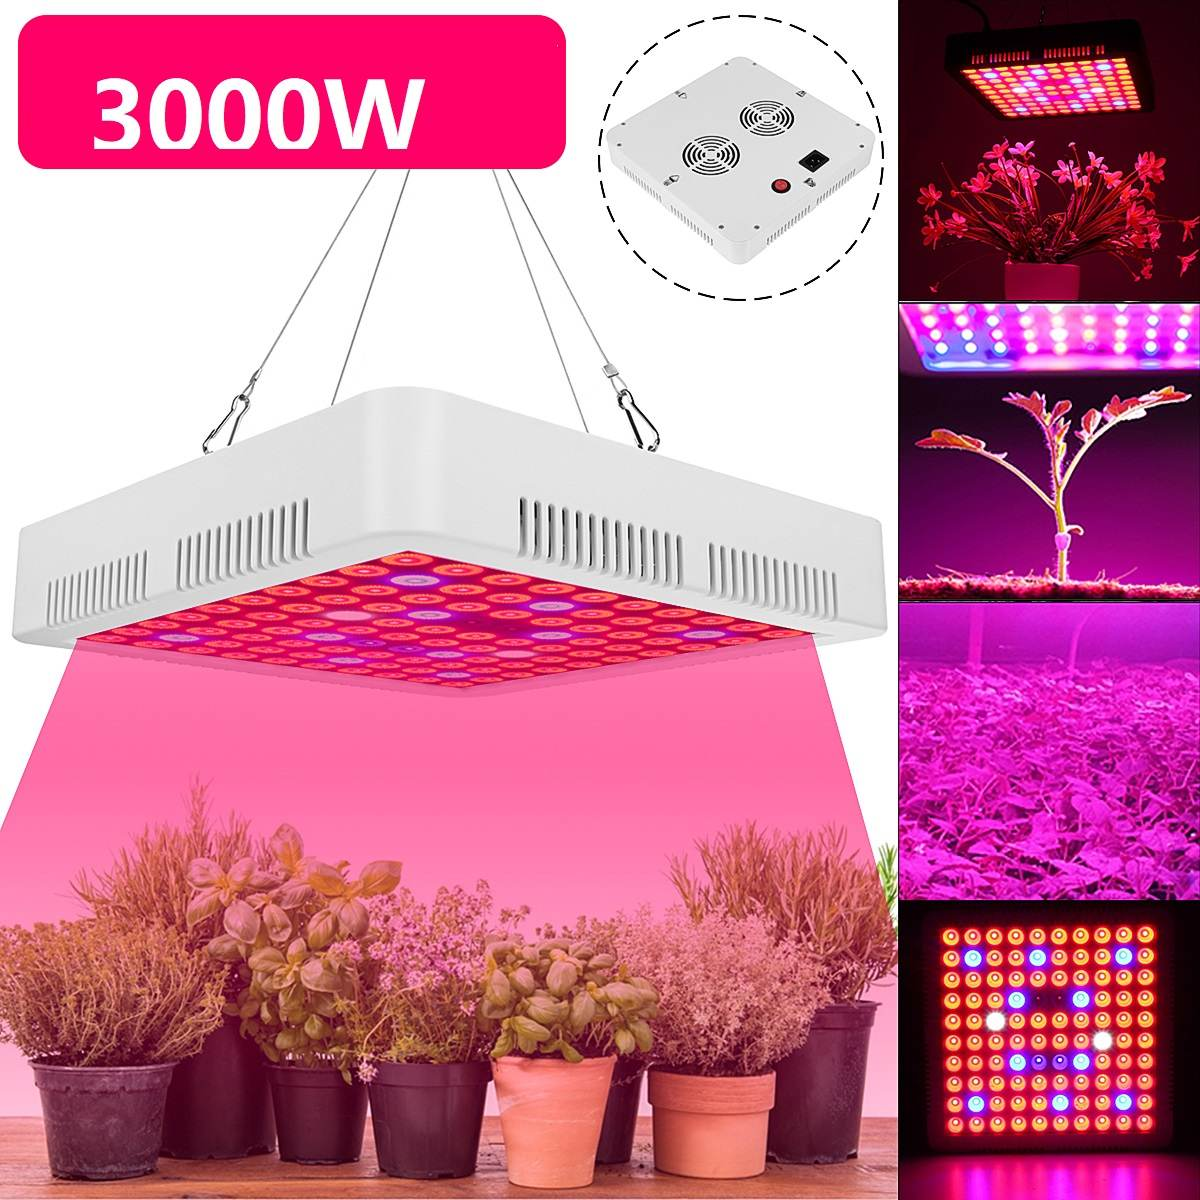 3000W LED Grow Lights Lamp Panel Hydroponic Plant Growing Full Spectrum For Veg Flower Indoor Plant Seeds AC85-265V Black/White